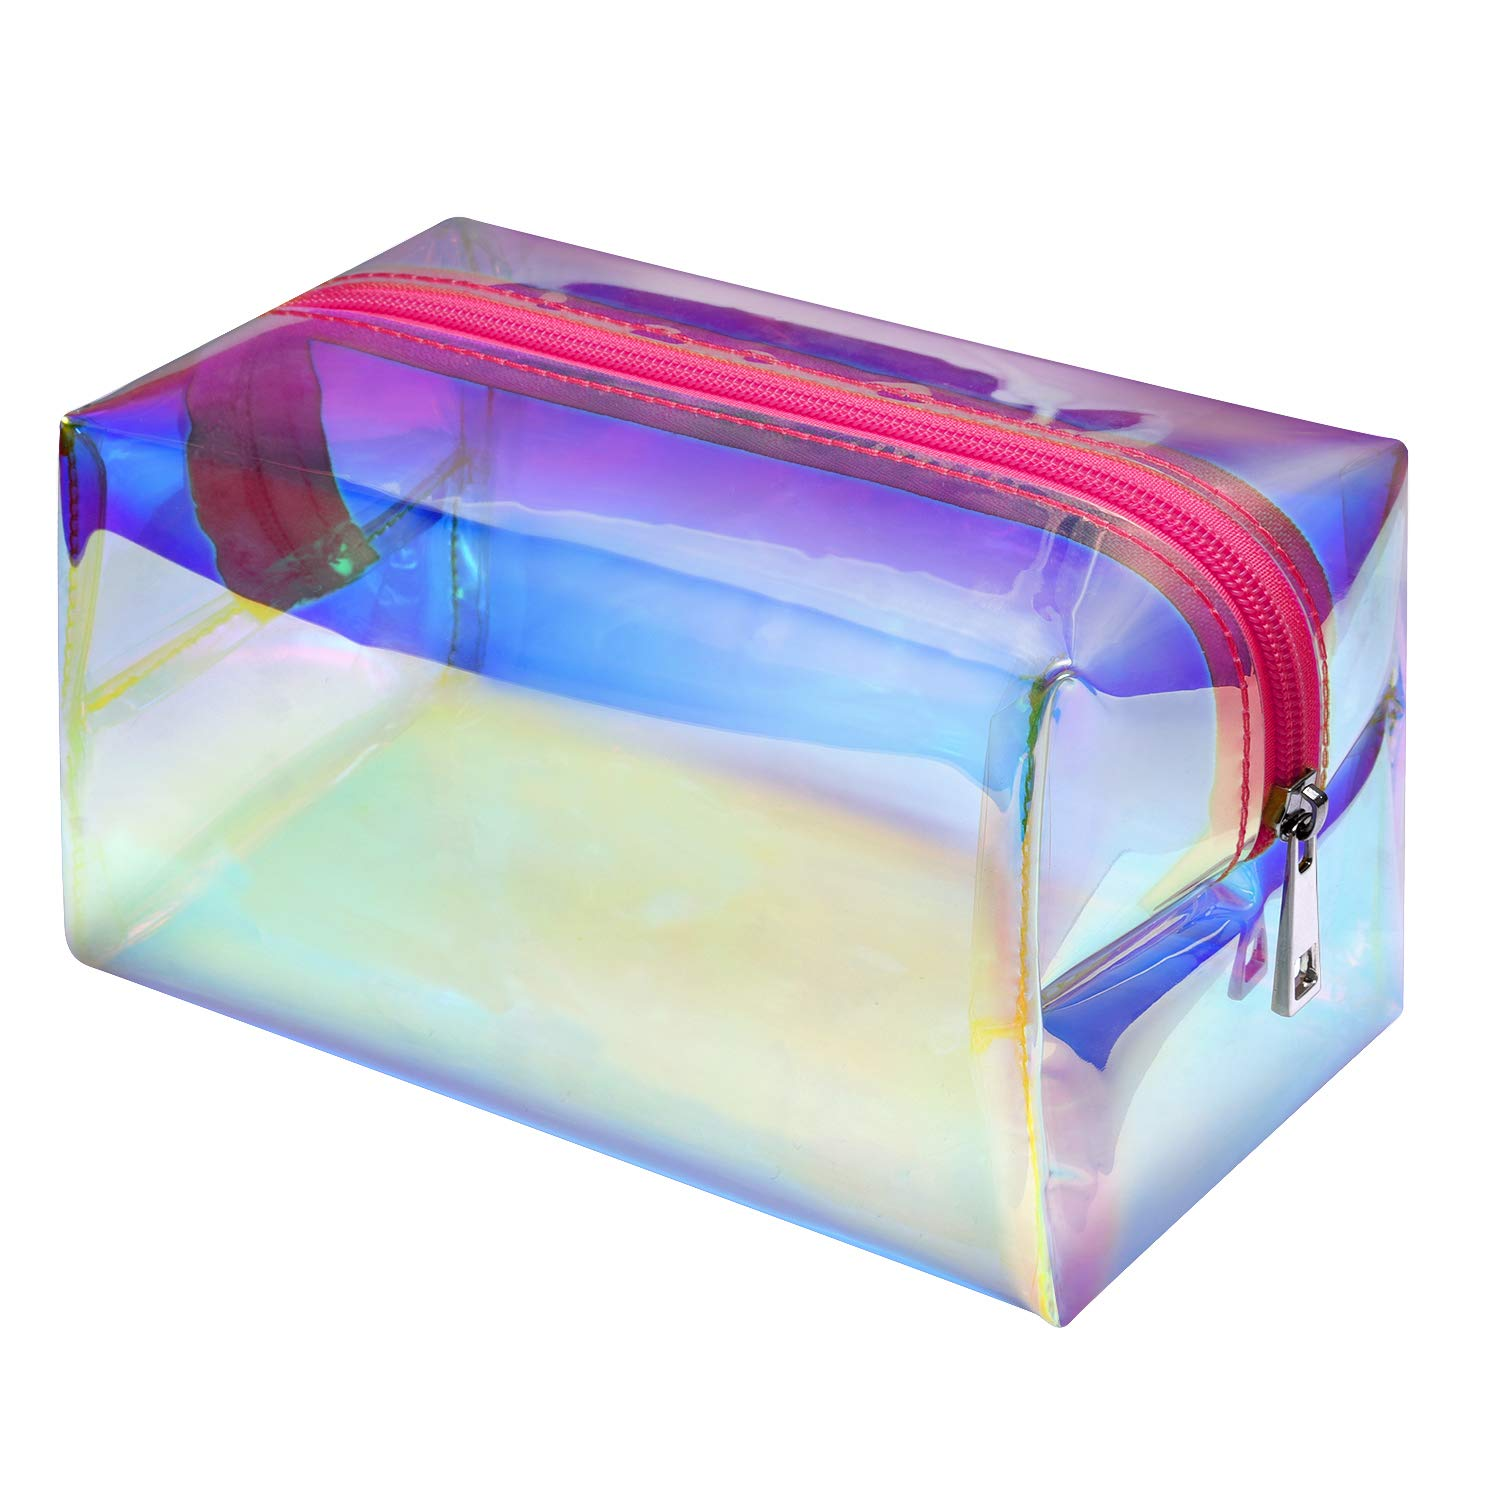 Makeup Bag, F-color Holographic Clear Travel Cosmetic Bag Large Capacity Toiletry Bag for Women, Rose Red